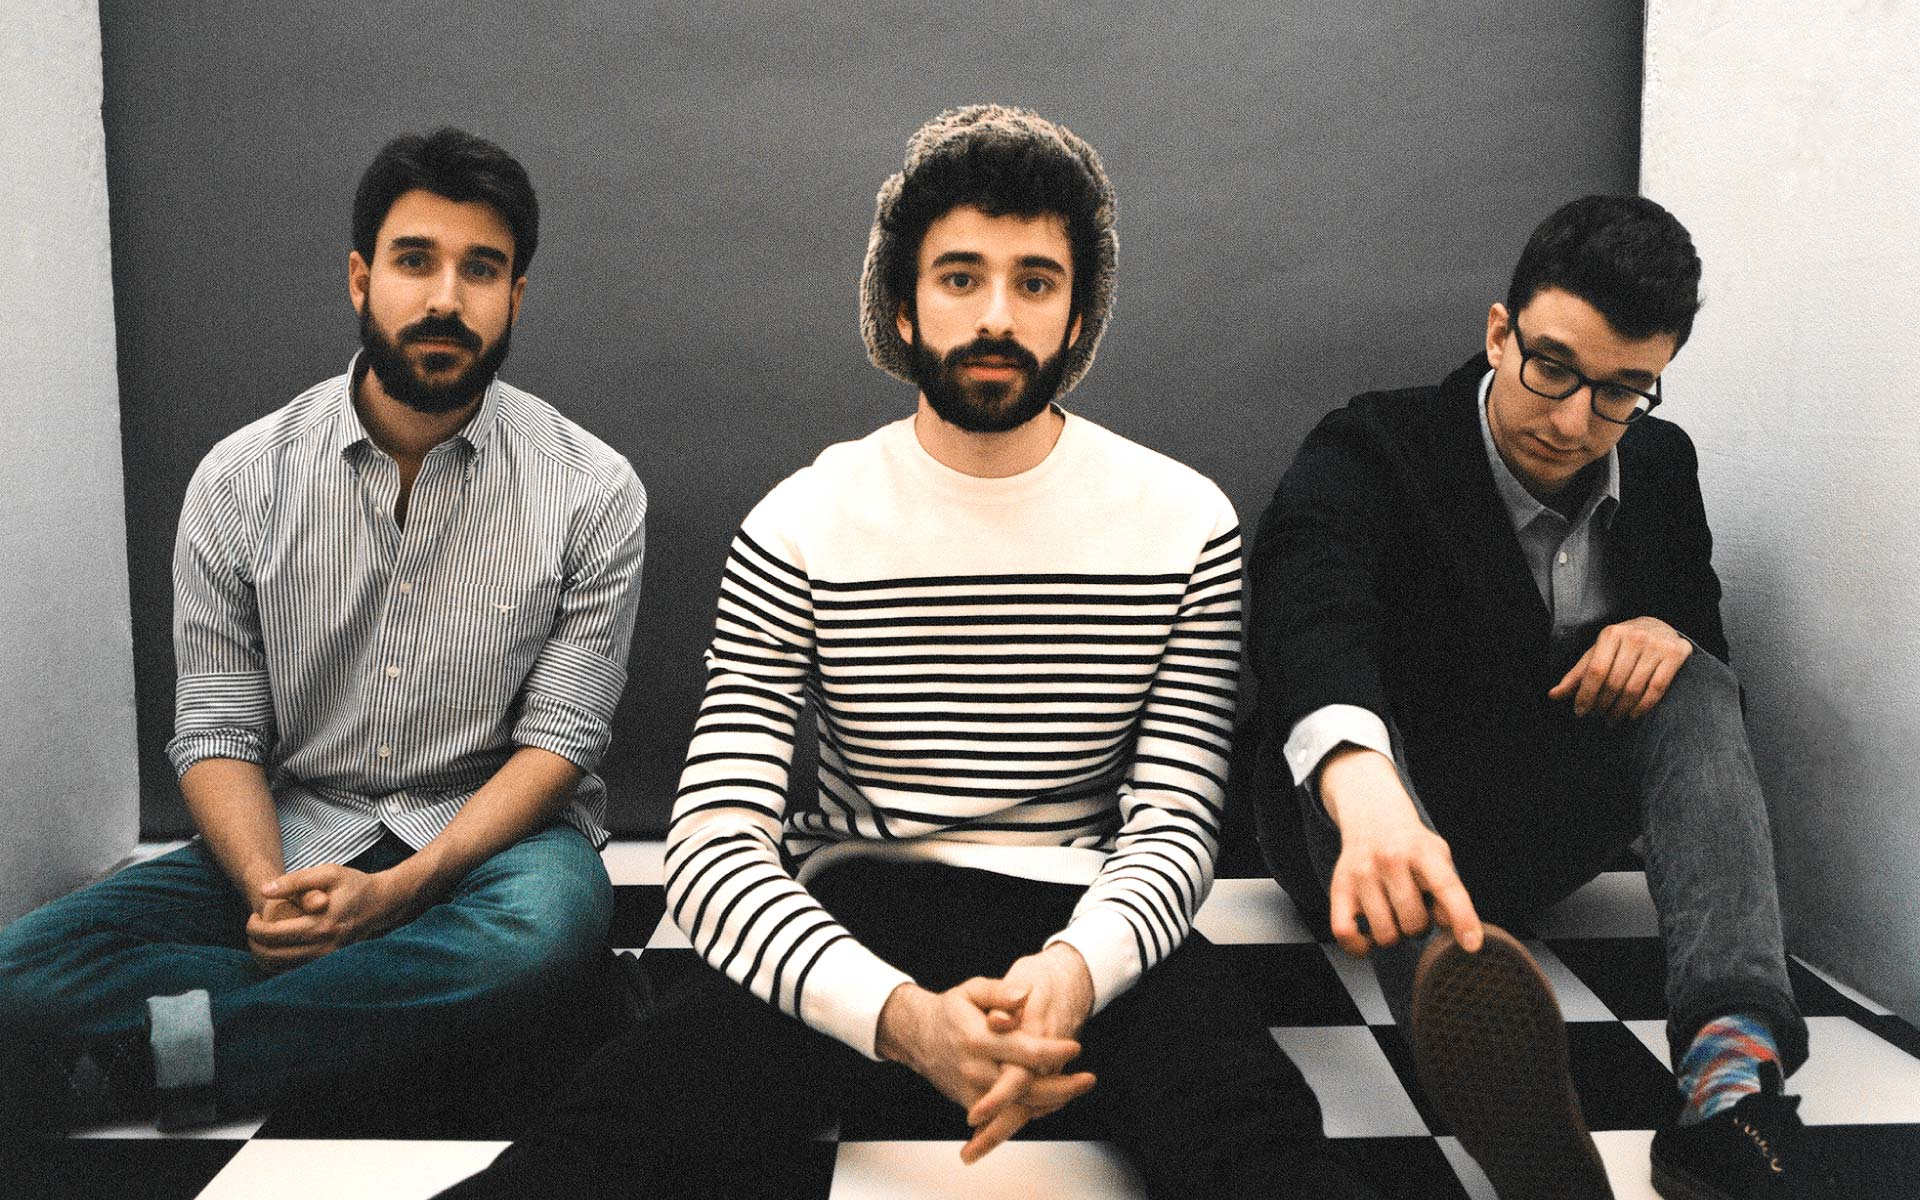 AJR members Ryan, Jack, and Adam Metzger